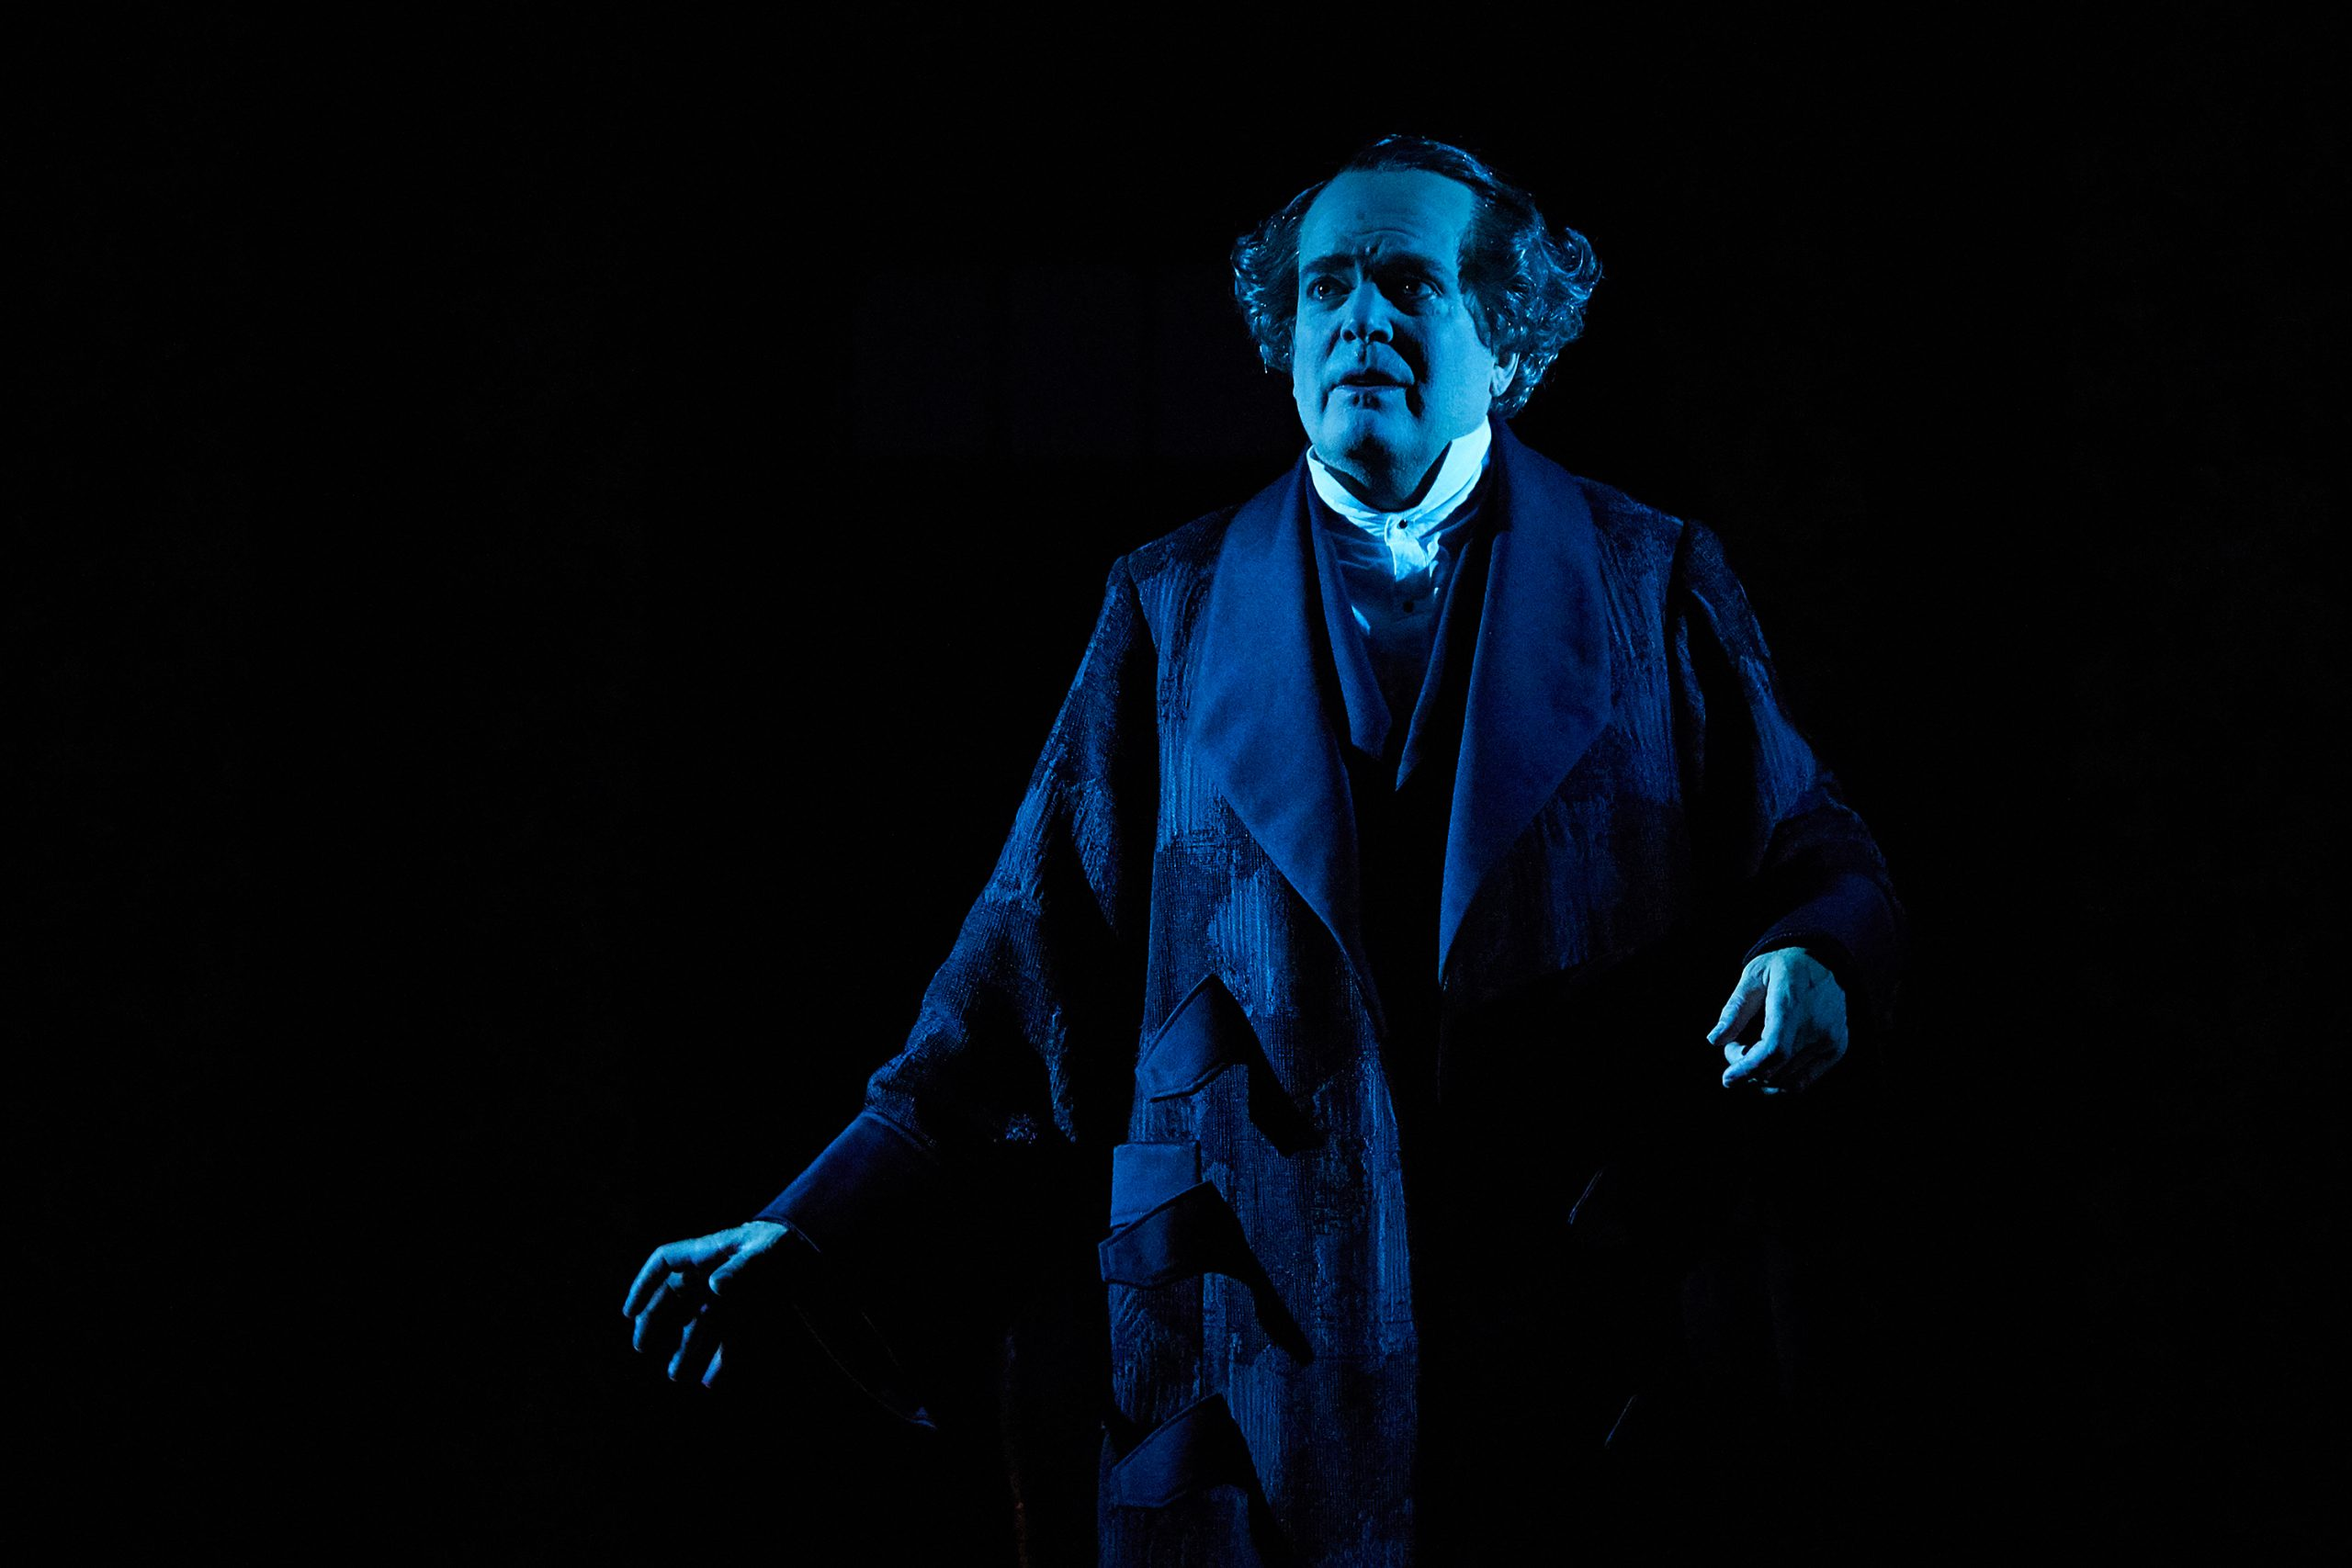 Tony Award winner Jefferson Mays in Charles Dickens' A CHRISTMAS CAROL, directed by Michael Arden, adapted by Mays, Susan Lyons, and Arden, and conceived by Arden and Tony Award nominee Dane Laffrey, streaming November 28 – January 3; photo by Chris Whitaker.